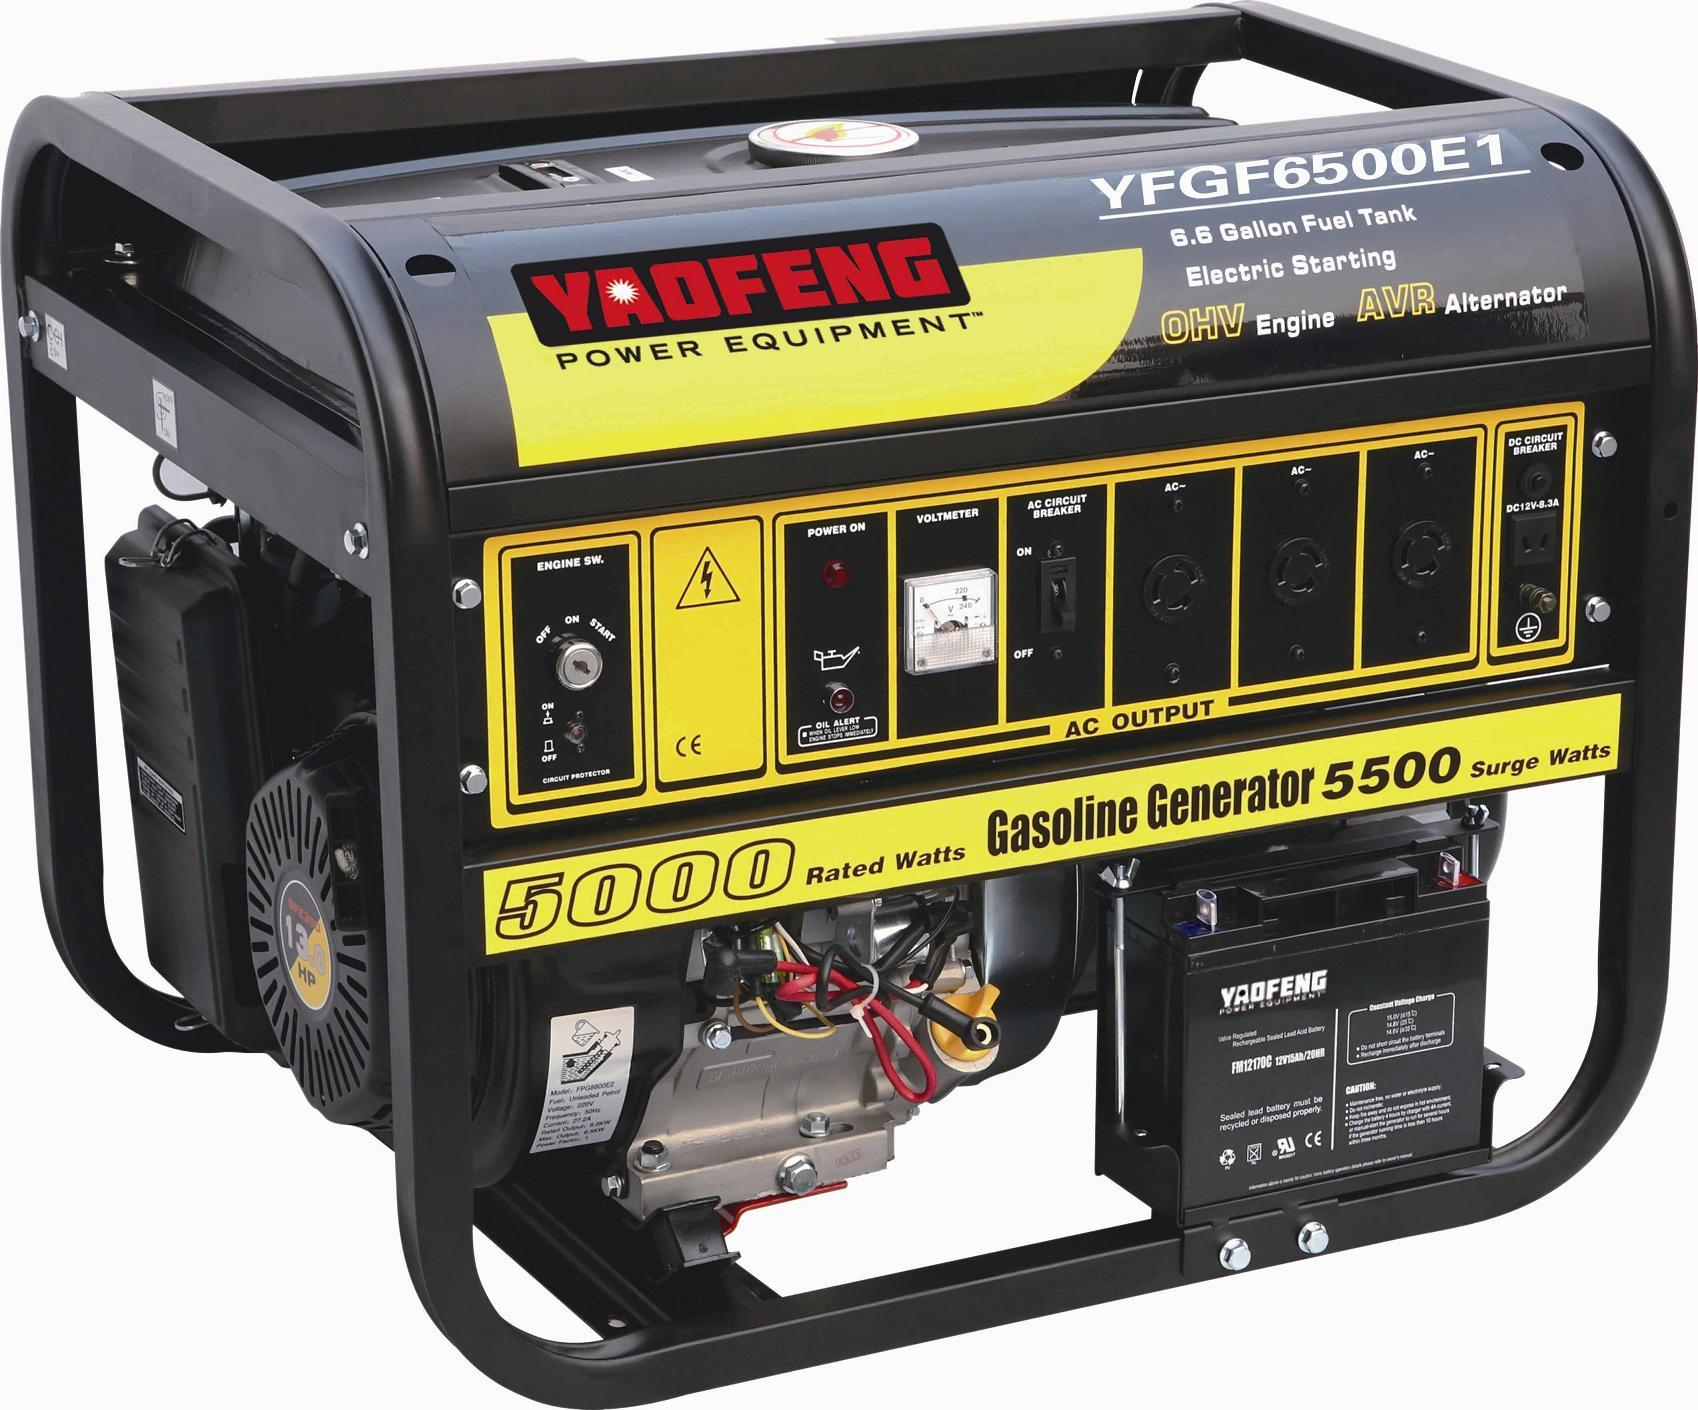 5000 Watts Portable Power Gasoline Generator with EPA, Carb, CE, Soncap Certificate (YFGF6500E1)